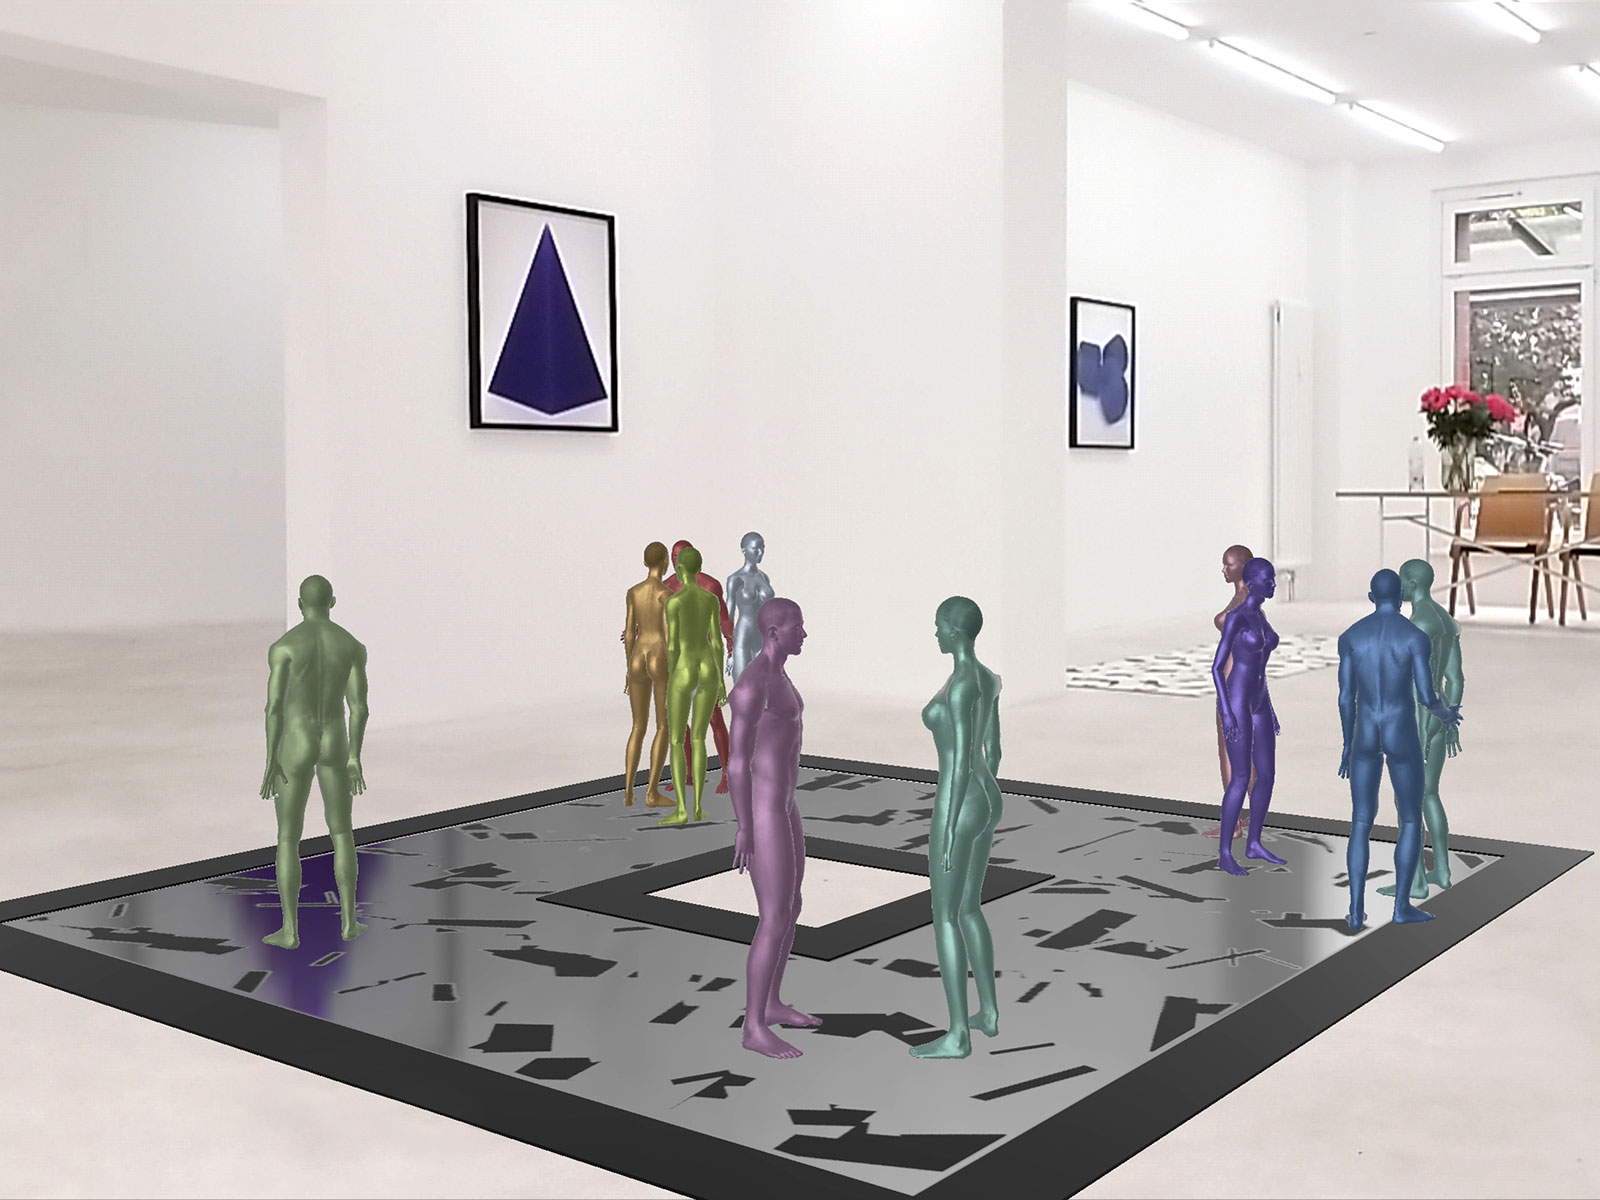 Cylinder & Bots, DAM Gallery, Exhibition View, 2019